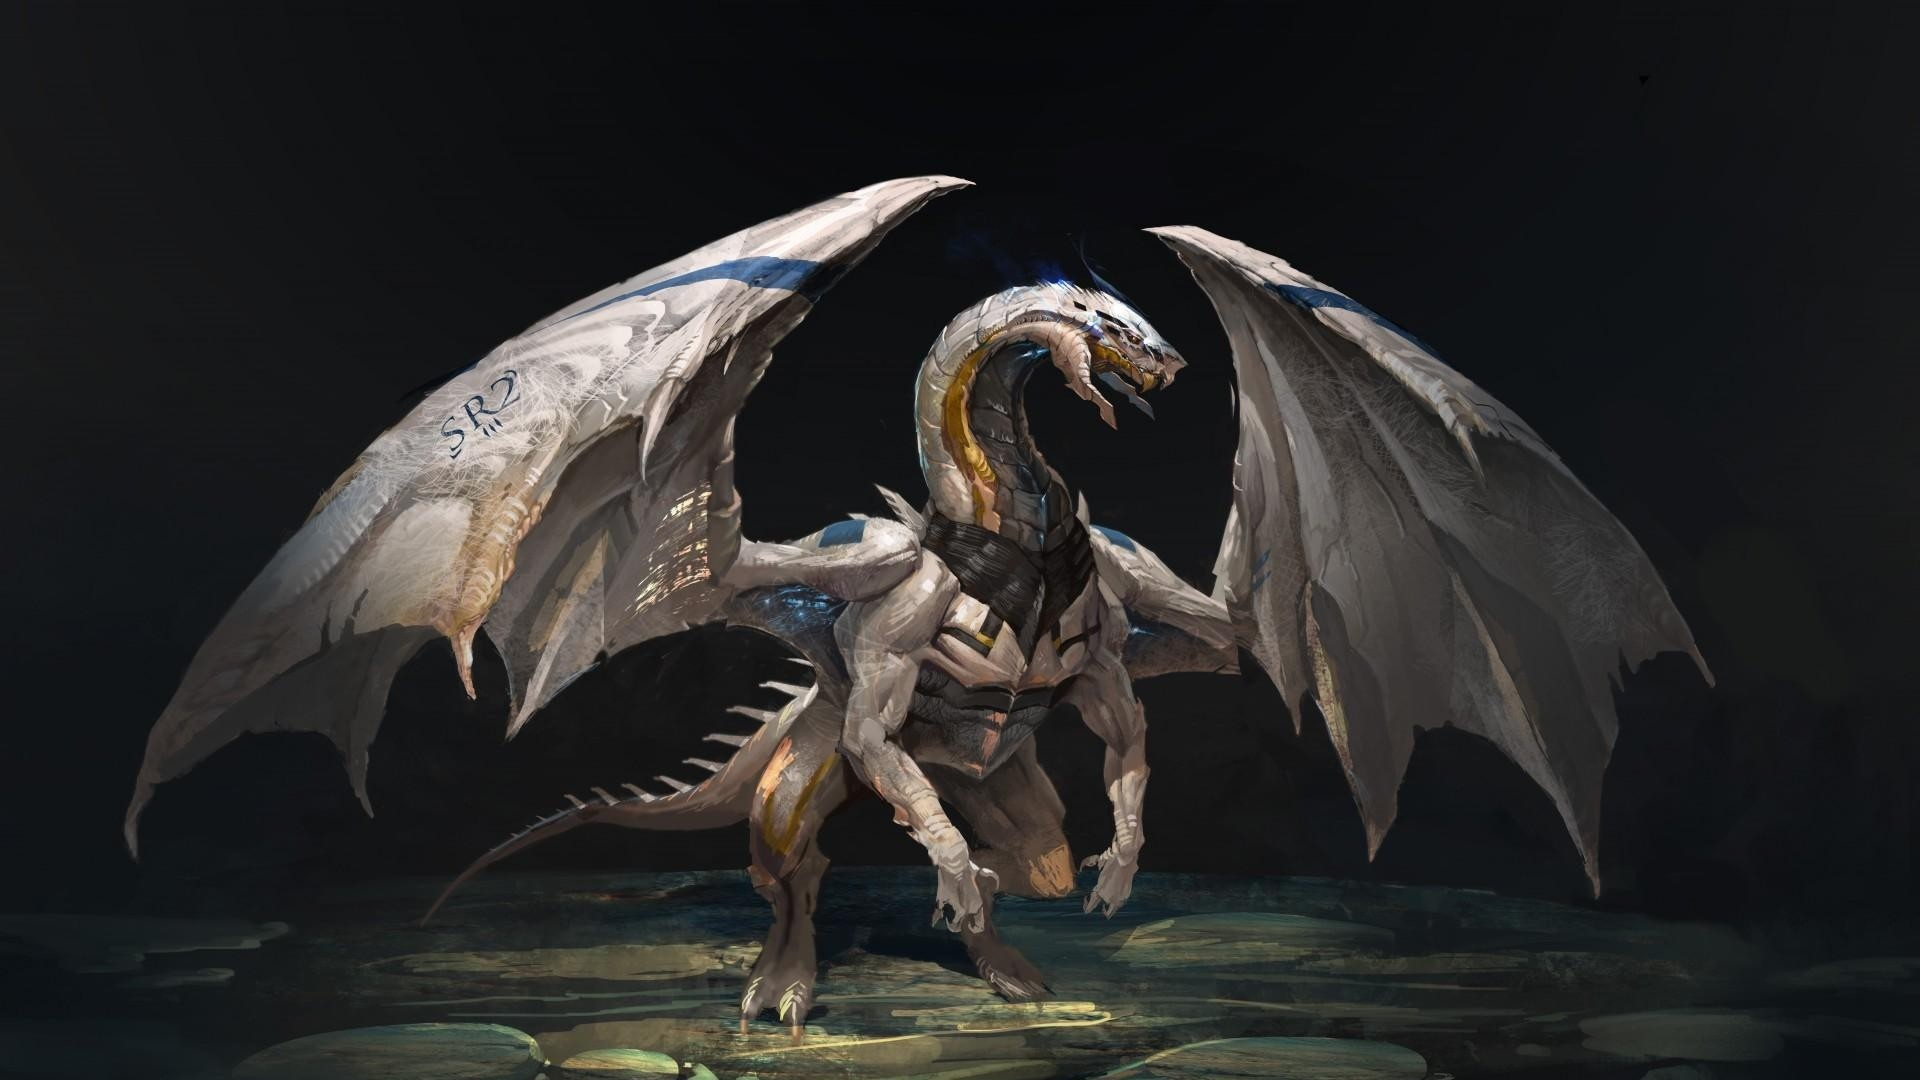 Download Wallpaper Dragon, Creature, Wings, Stones Full HD 1080p  HD Background